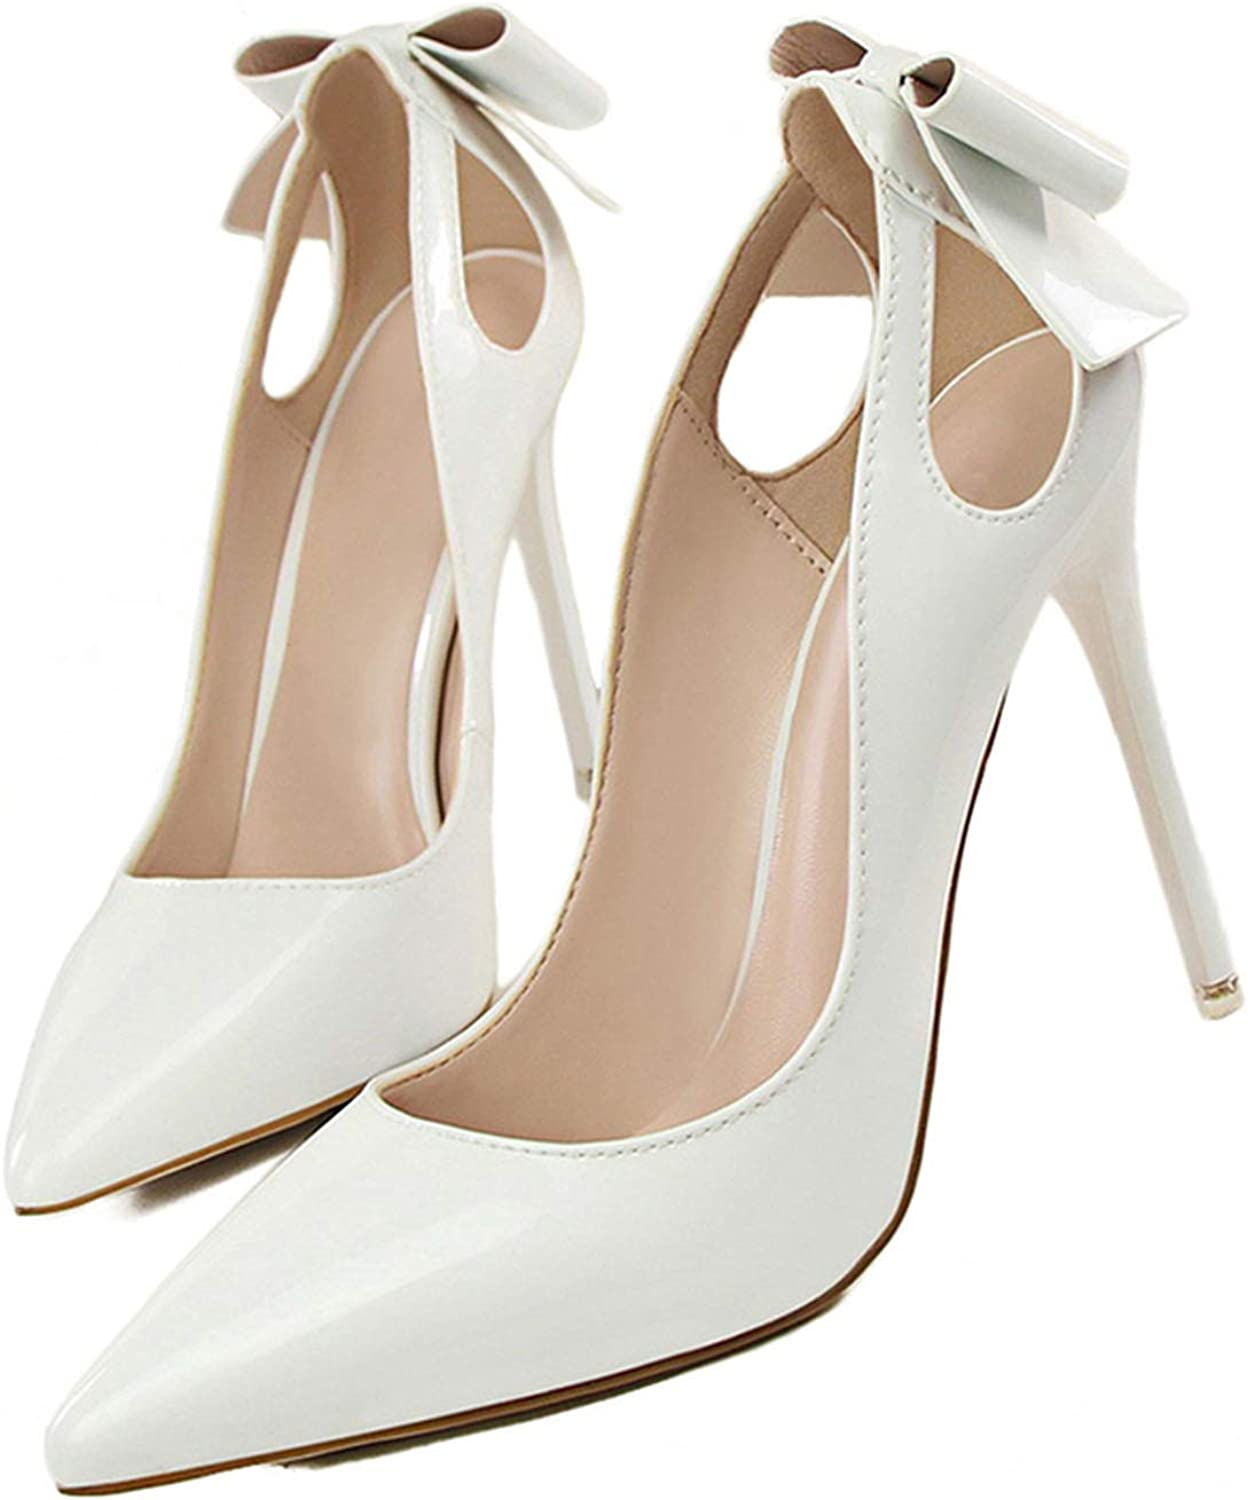 Women Wedding Pumps Ladies shoes Women's Sweet Concise Shallow Cutouts Butterfly-Knot shoes